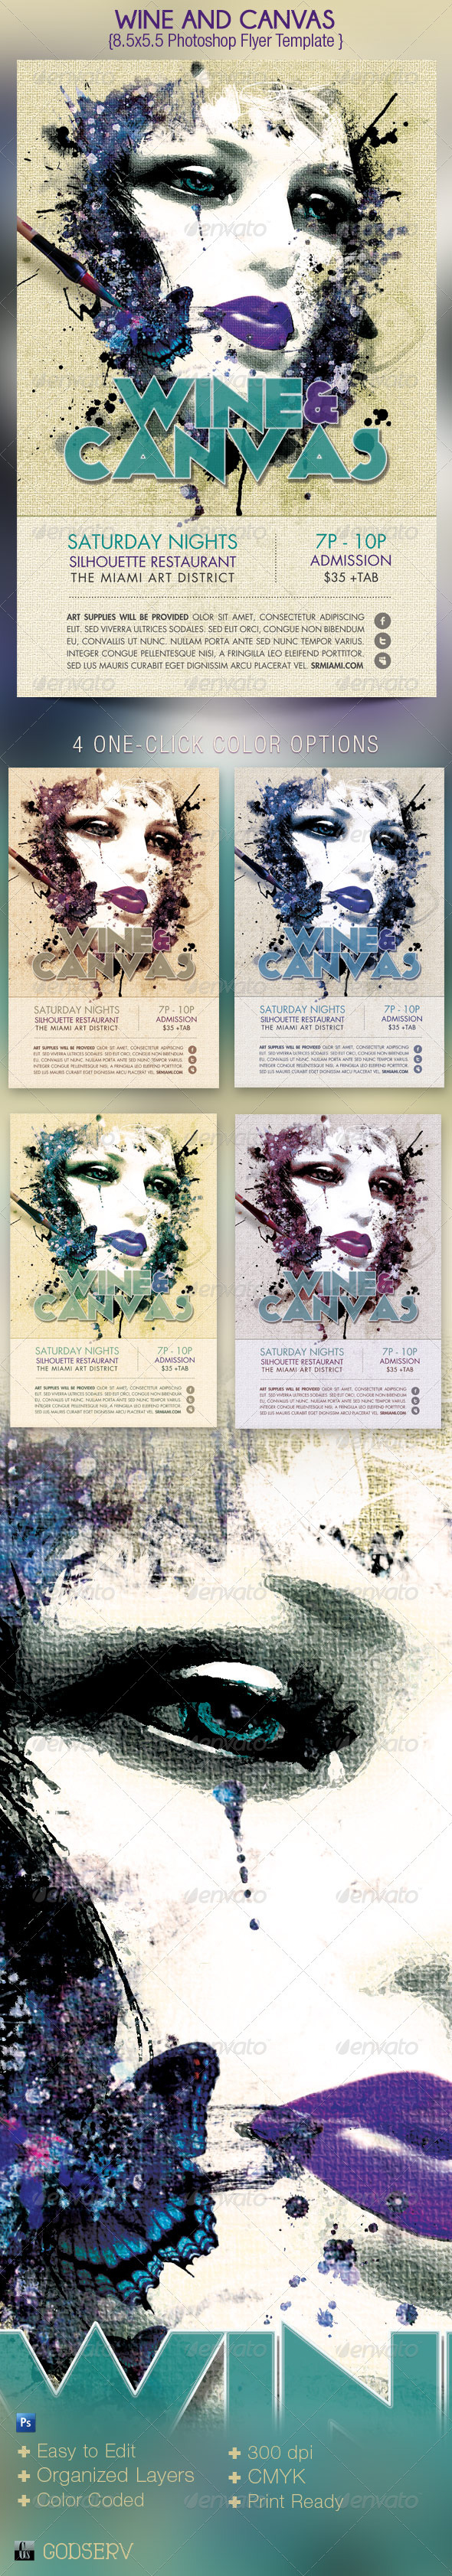 Wine Canvas Art Event Flyer Template - Events Flyers